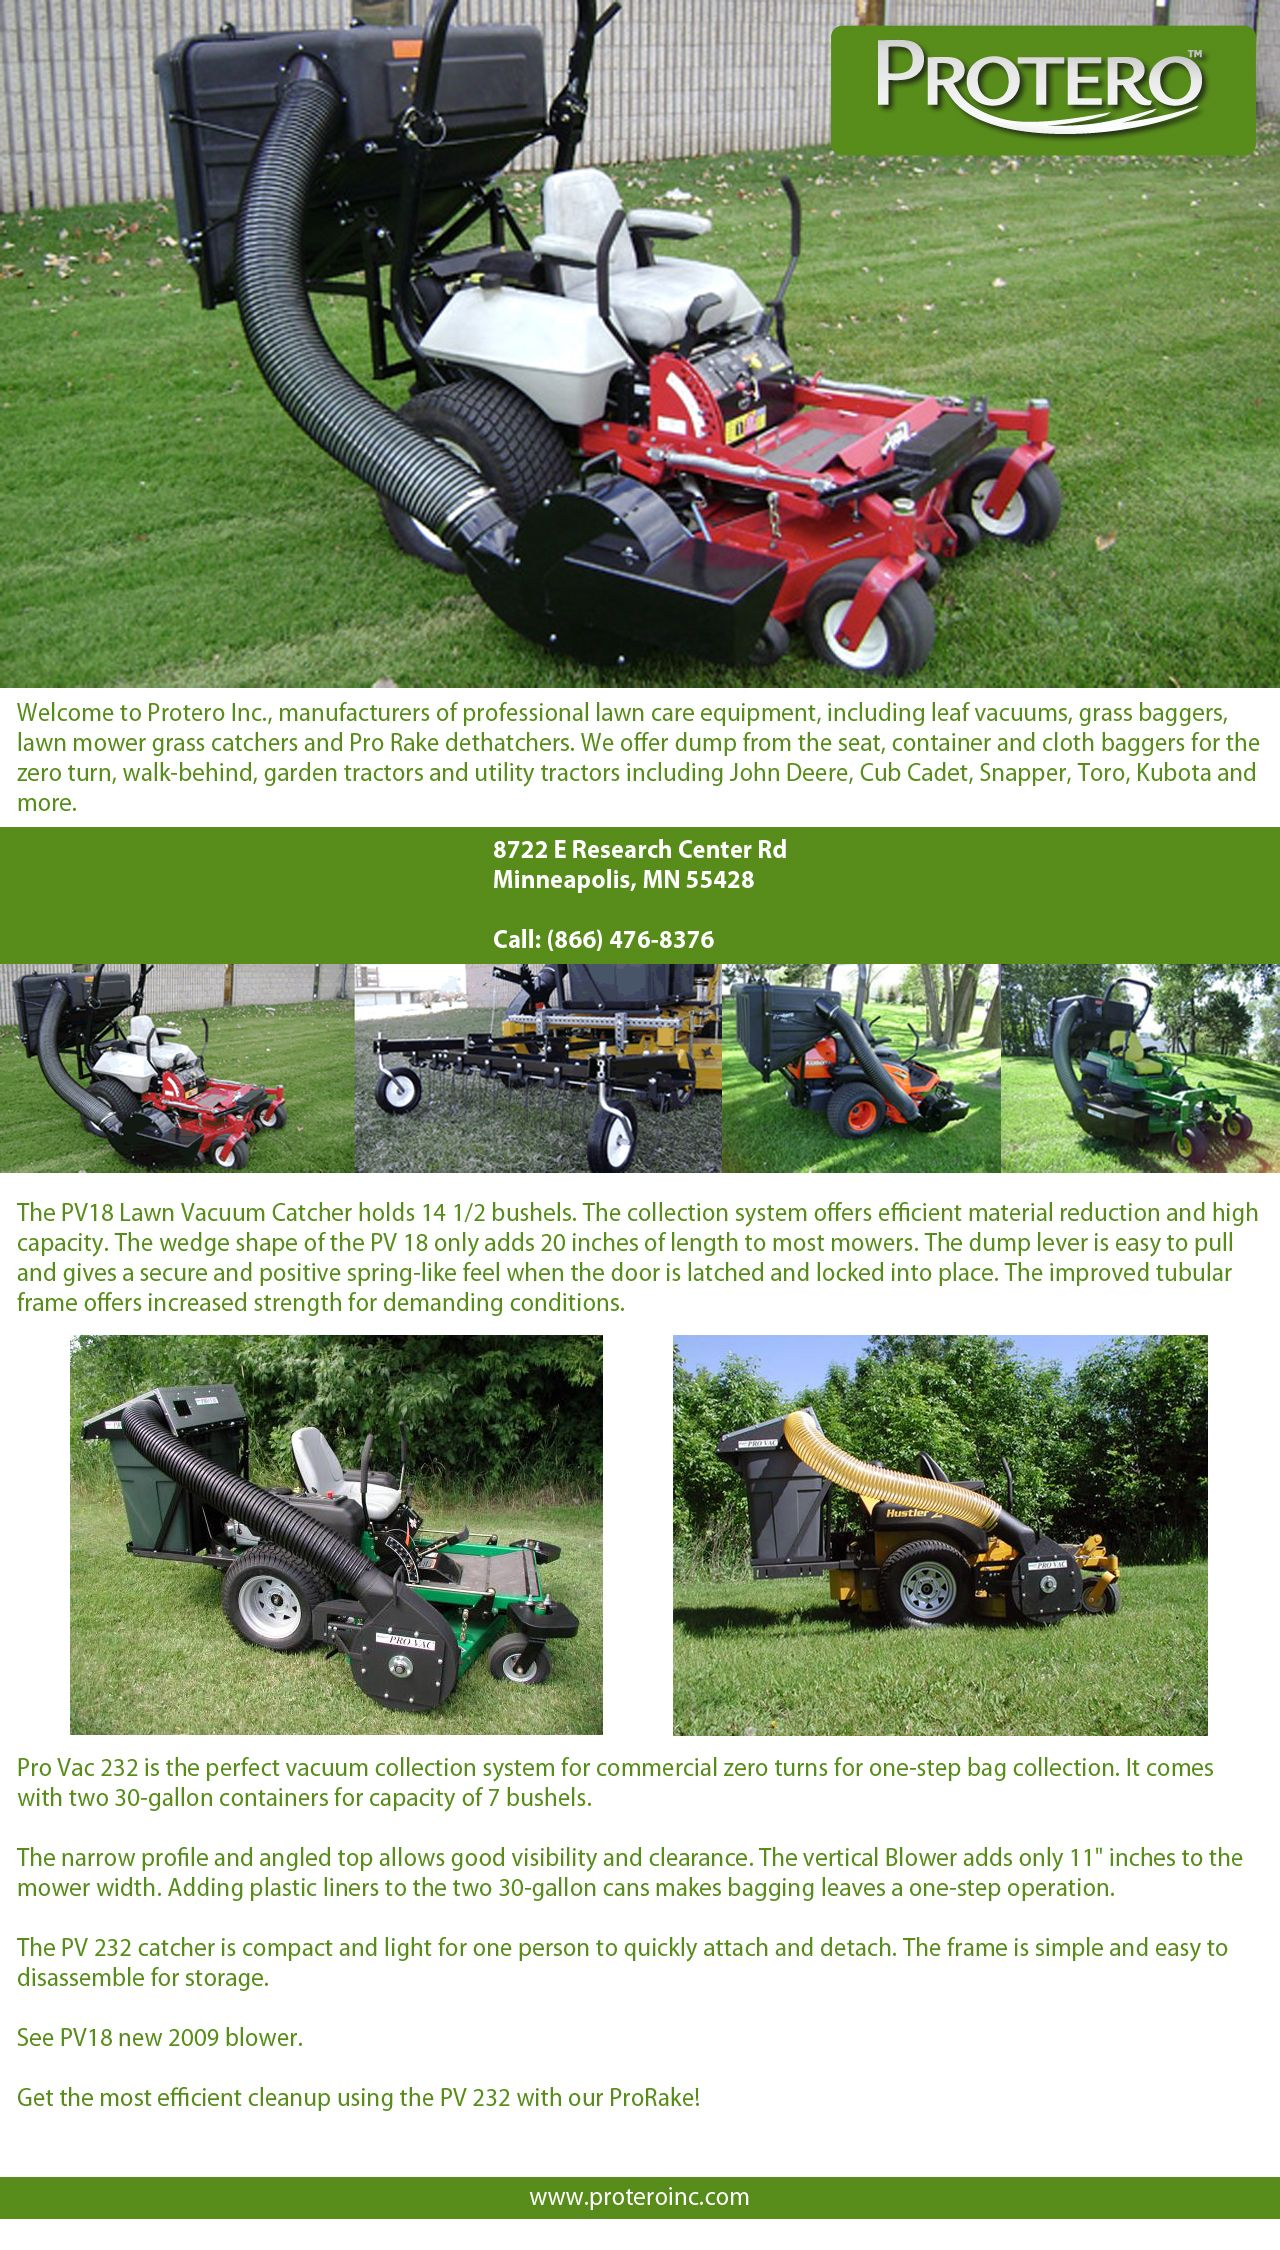 Http Www Proteroinc Com The Pro Vac Leaf Vacuum Systems Are Designed For Best Visibility Capacity Materia Zero Turn Lawn Mowers Lawn Equipment Lawn Mower